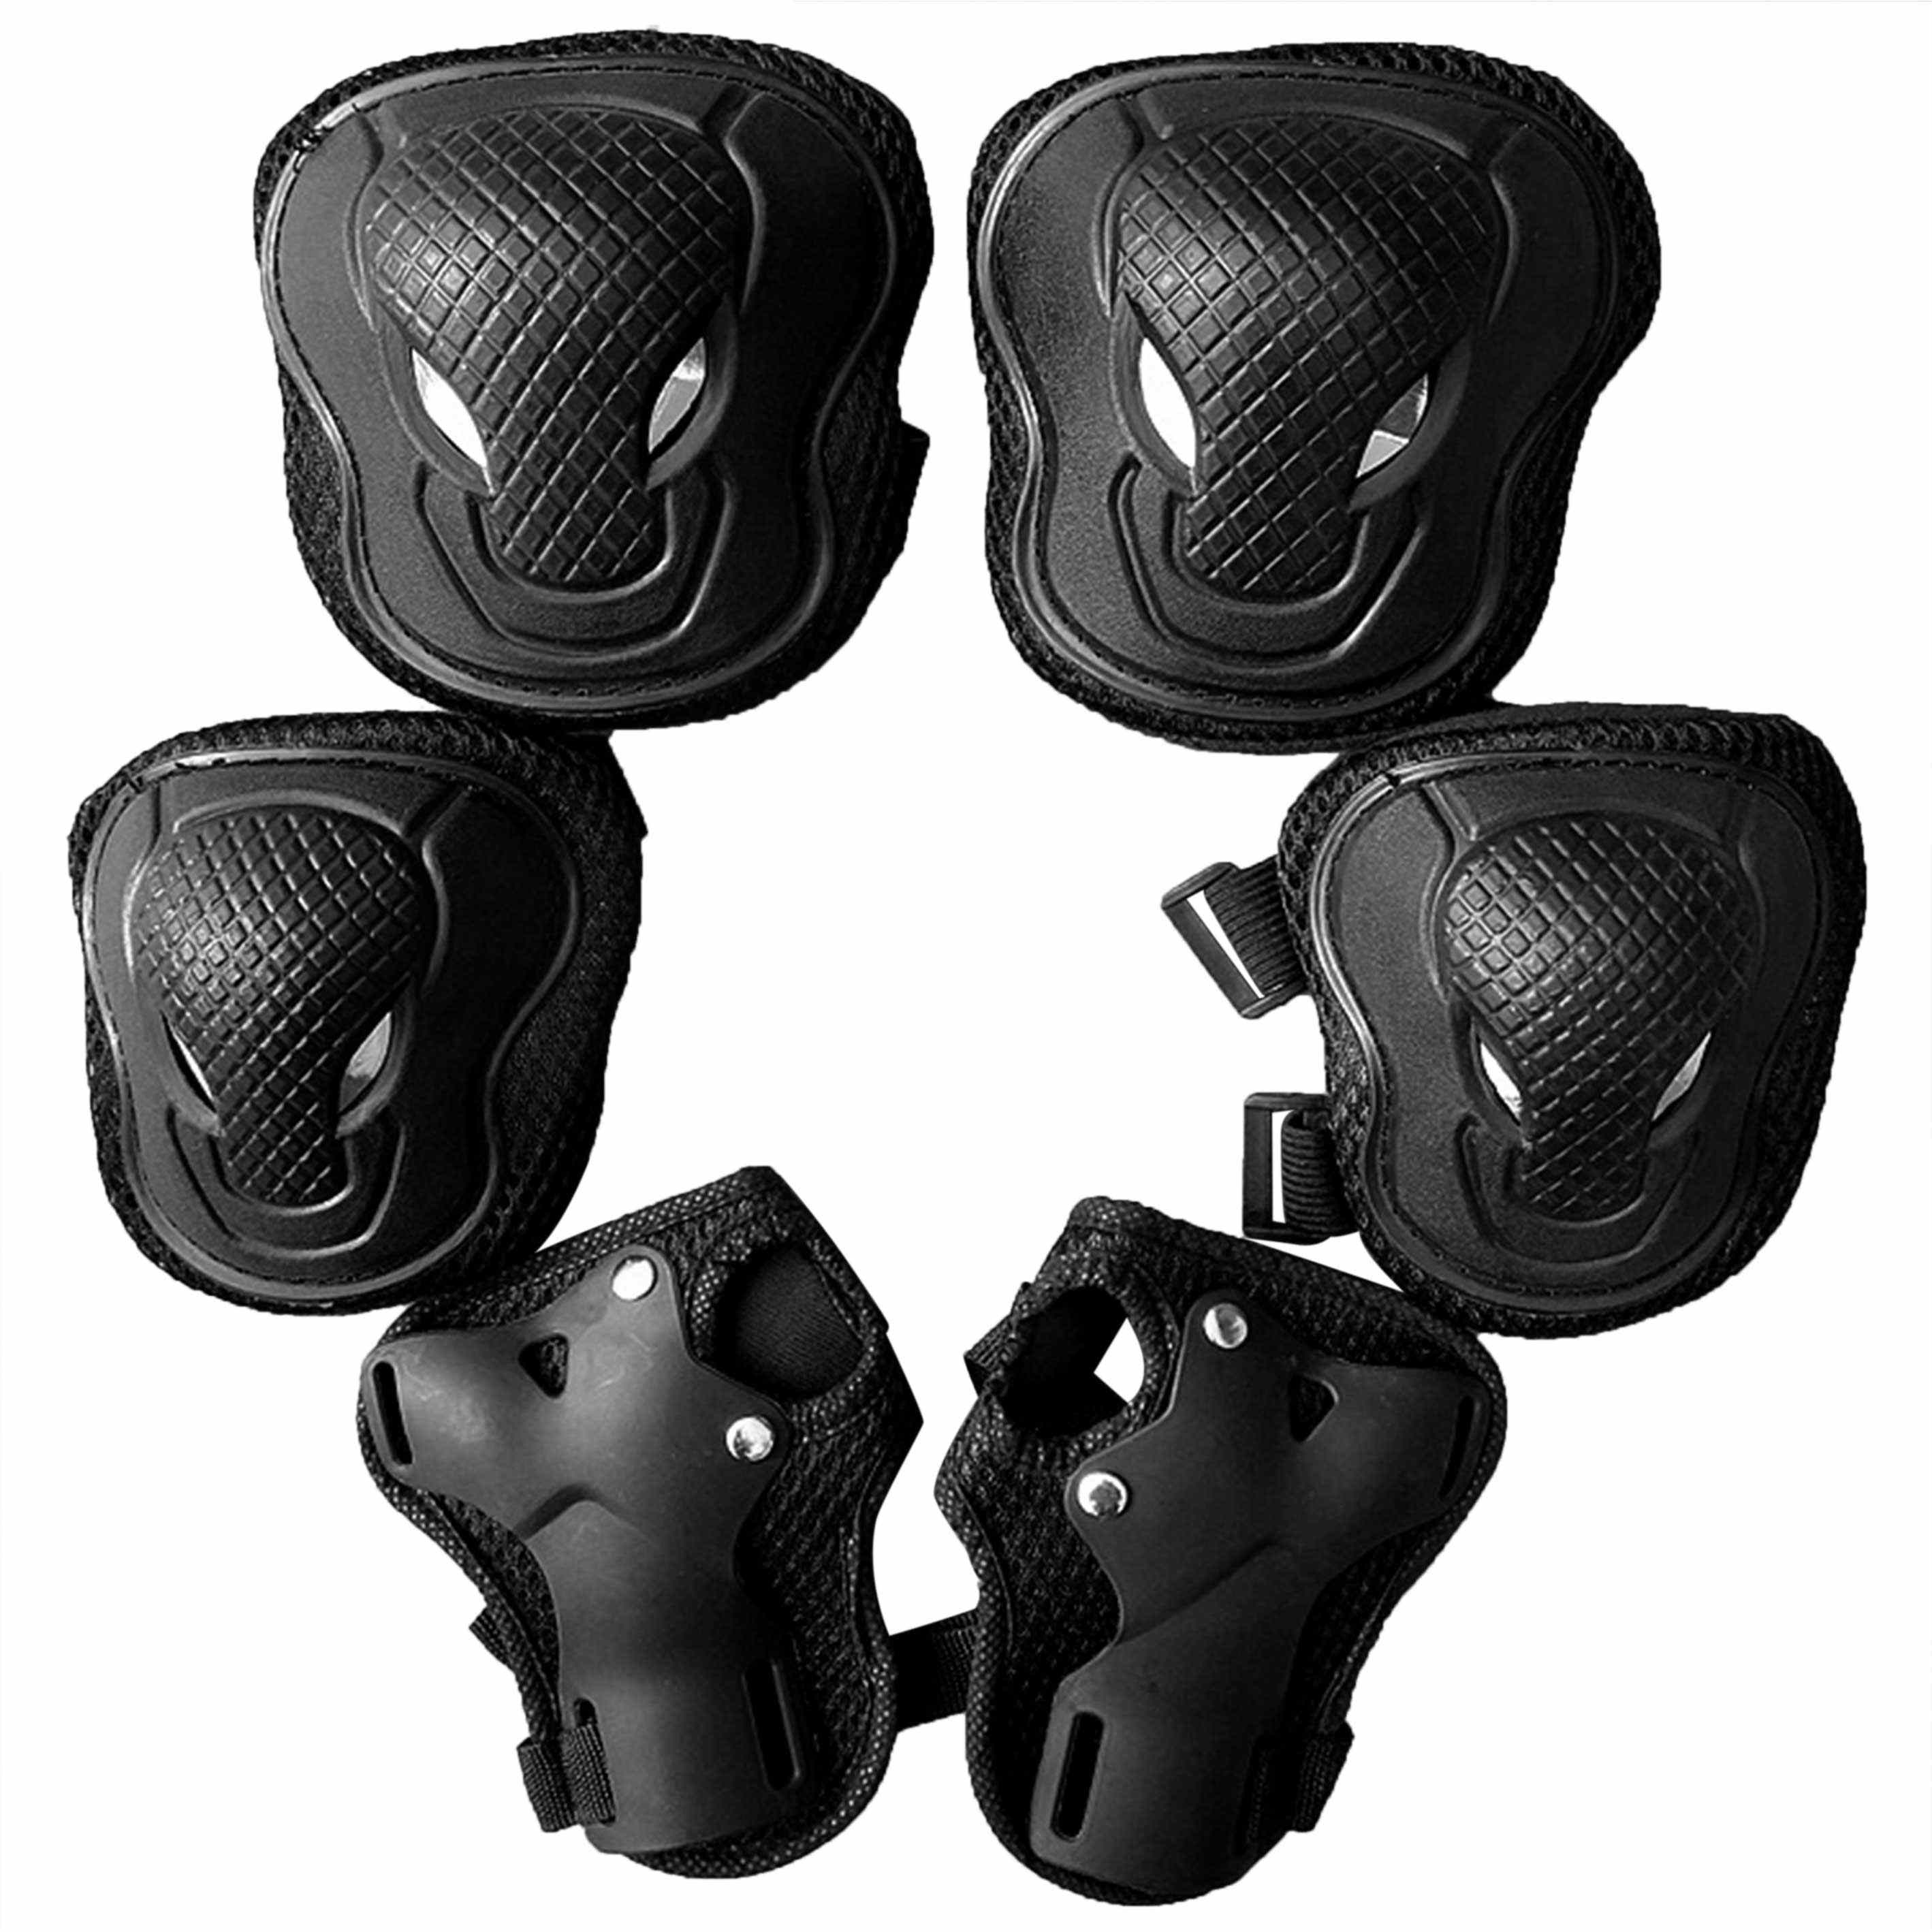 Elbow Wrist Knee Pads Sport Safety Protective Gear Guard for Motorcycle Skate